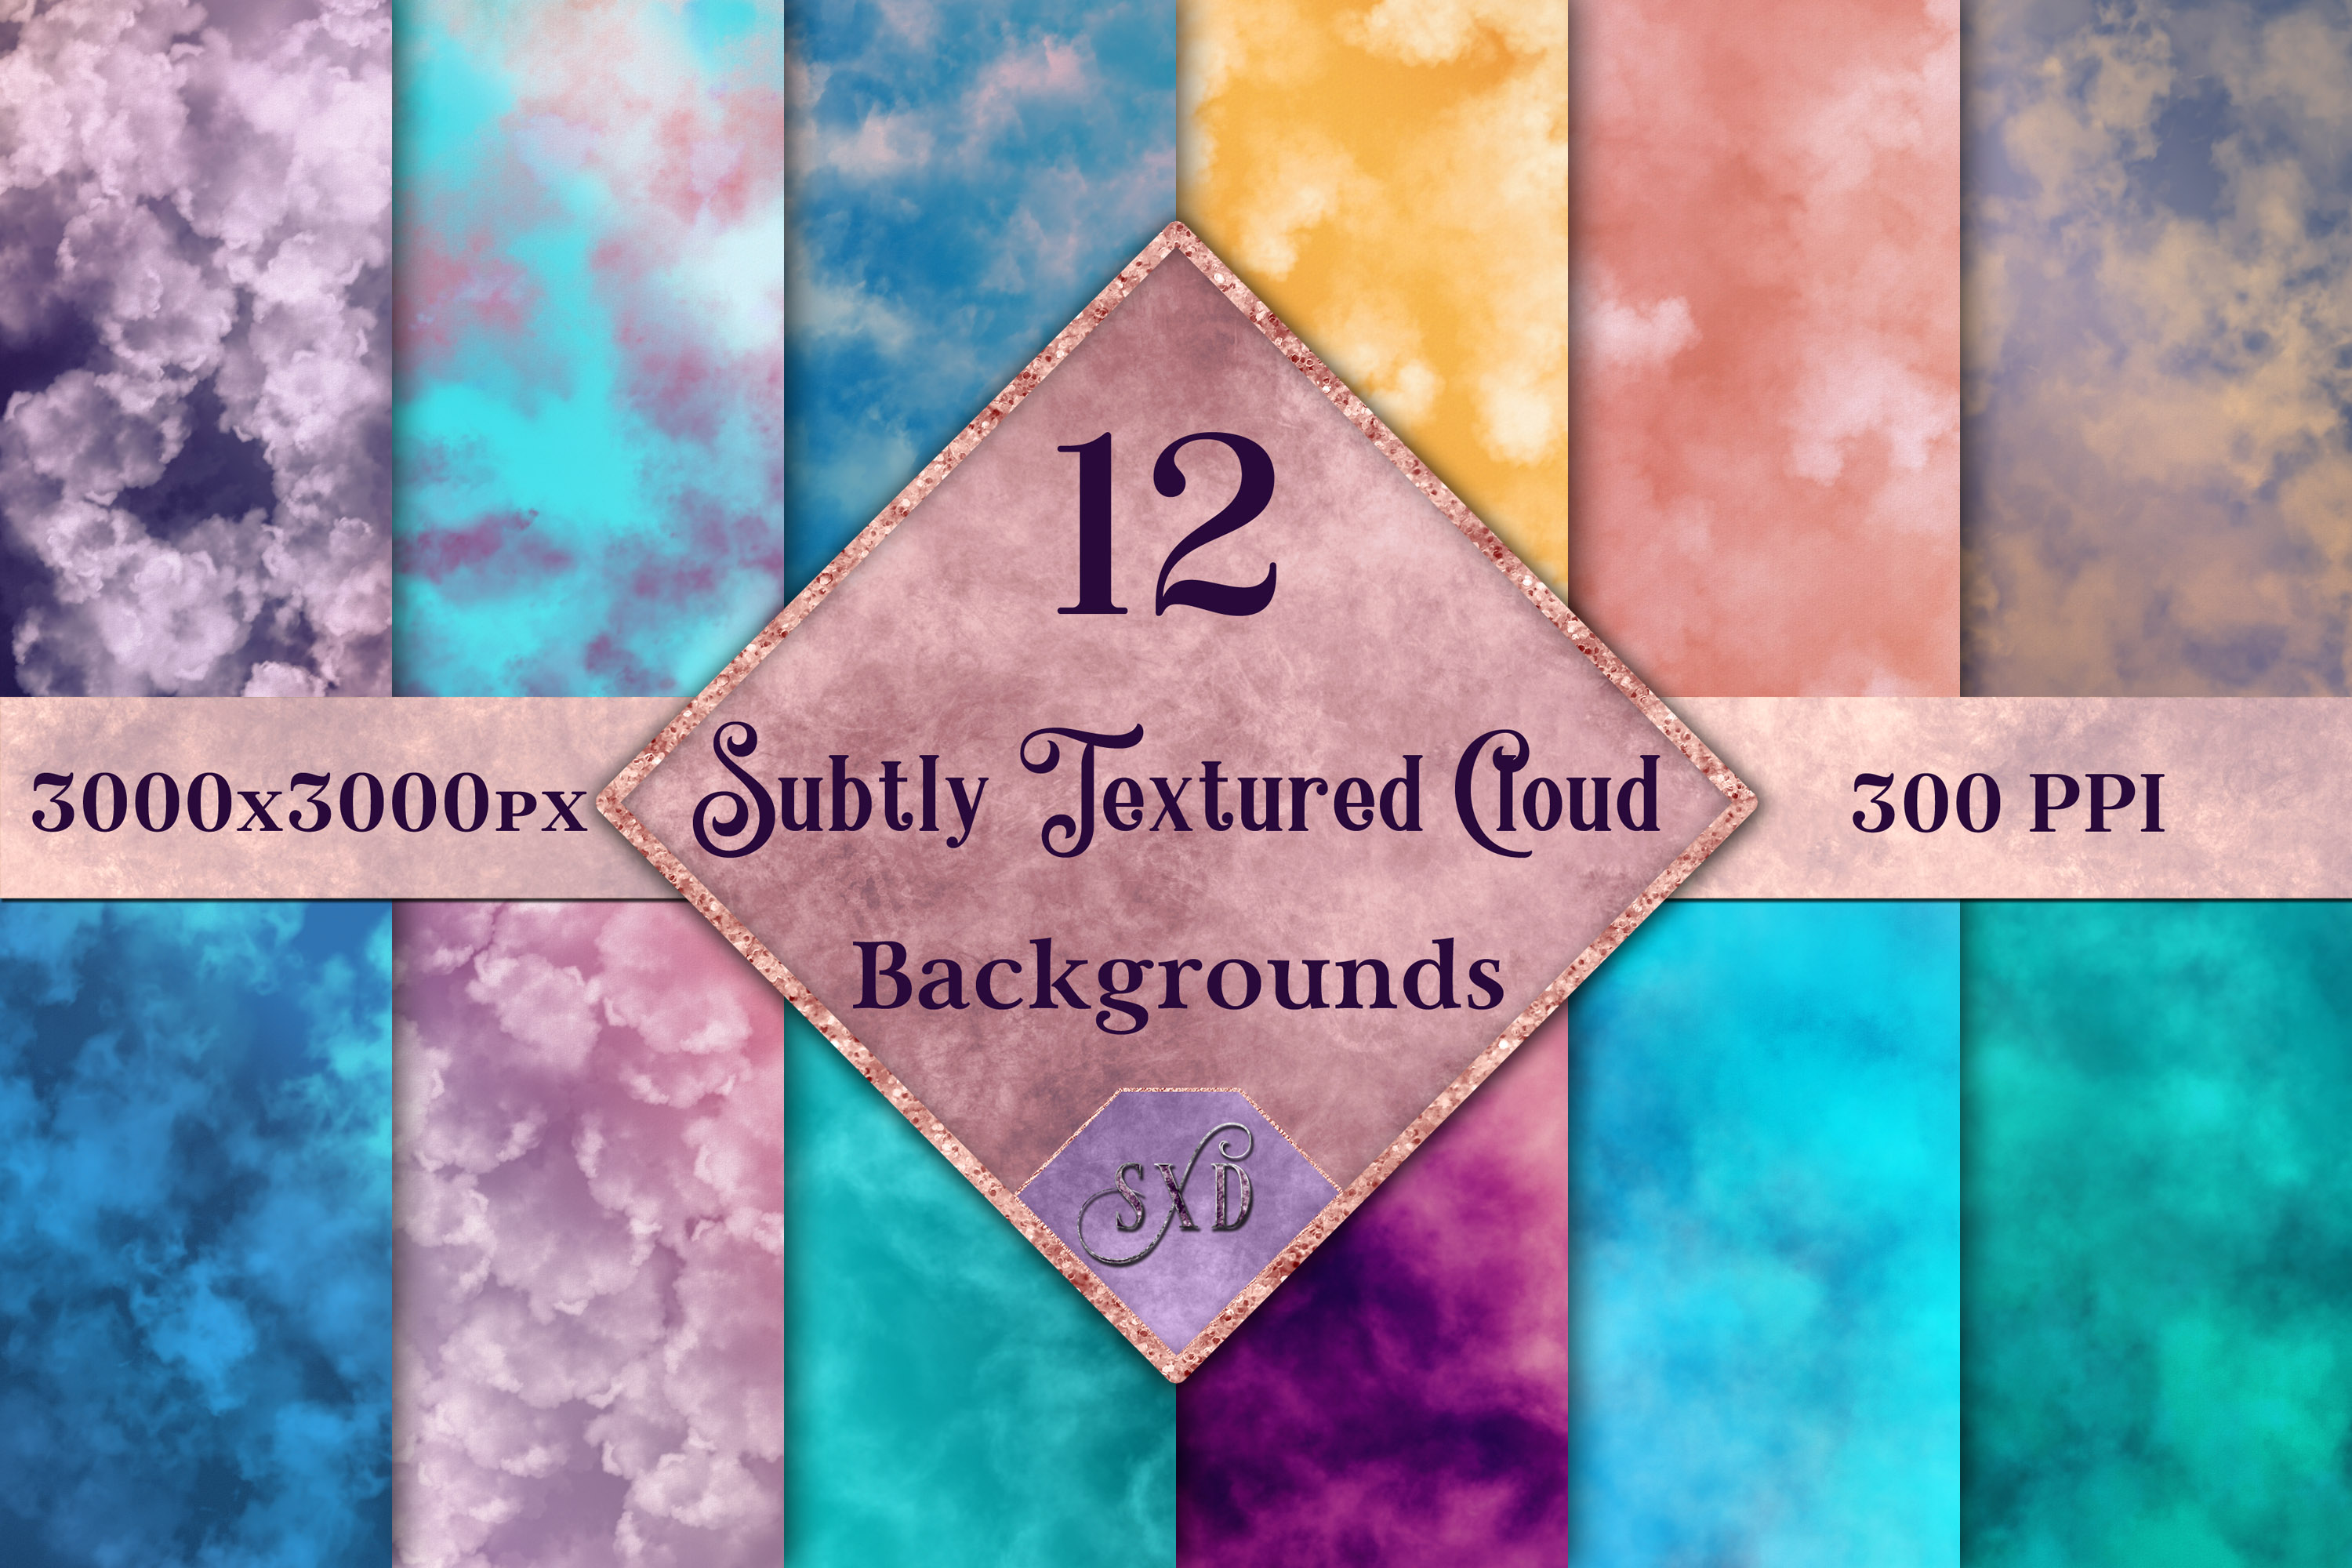 Subtly Textured Cloud Backgrounds - 12 Image Textures Set example image 1